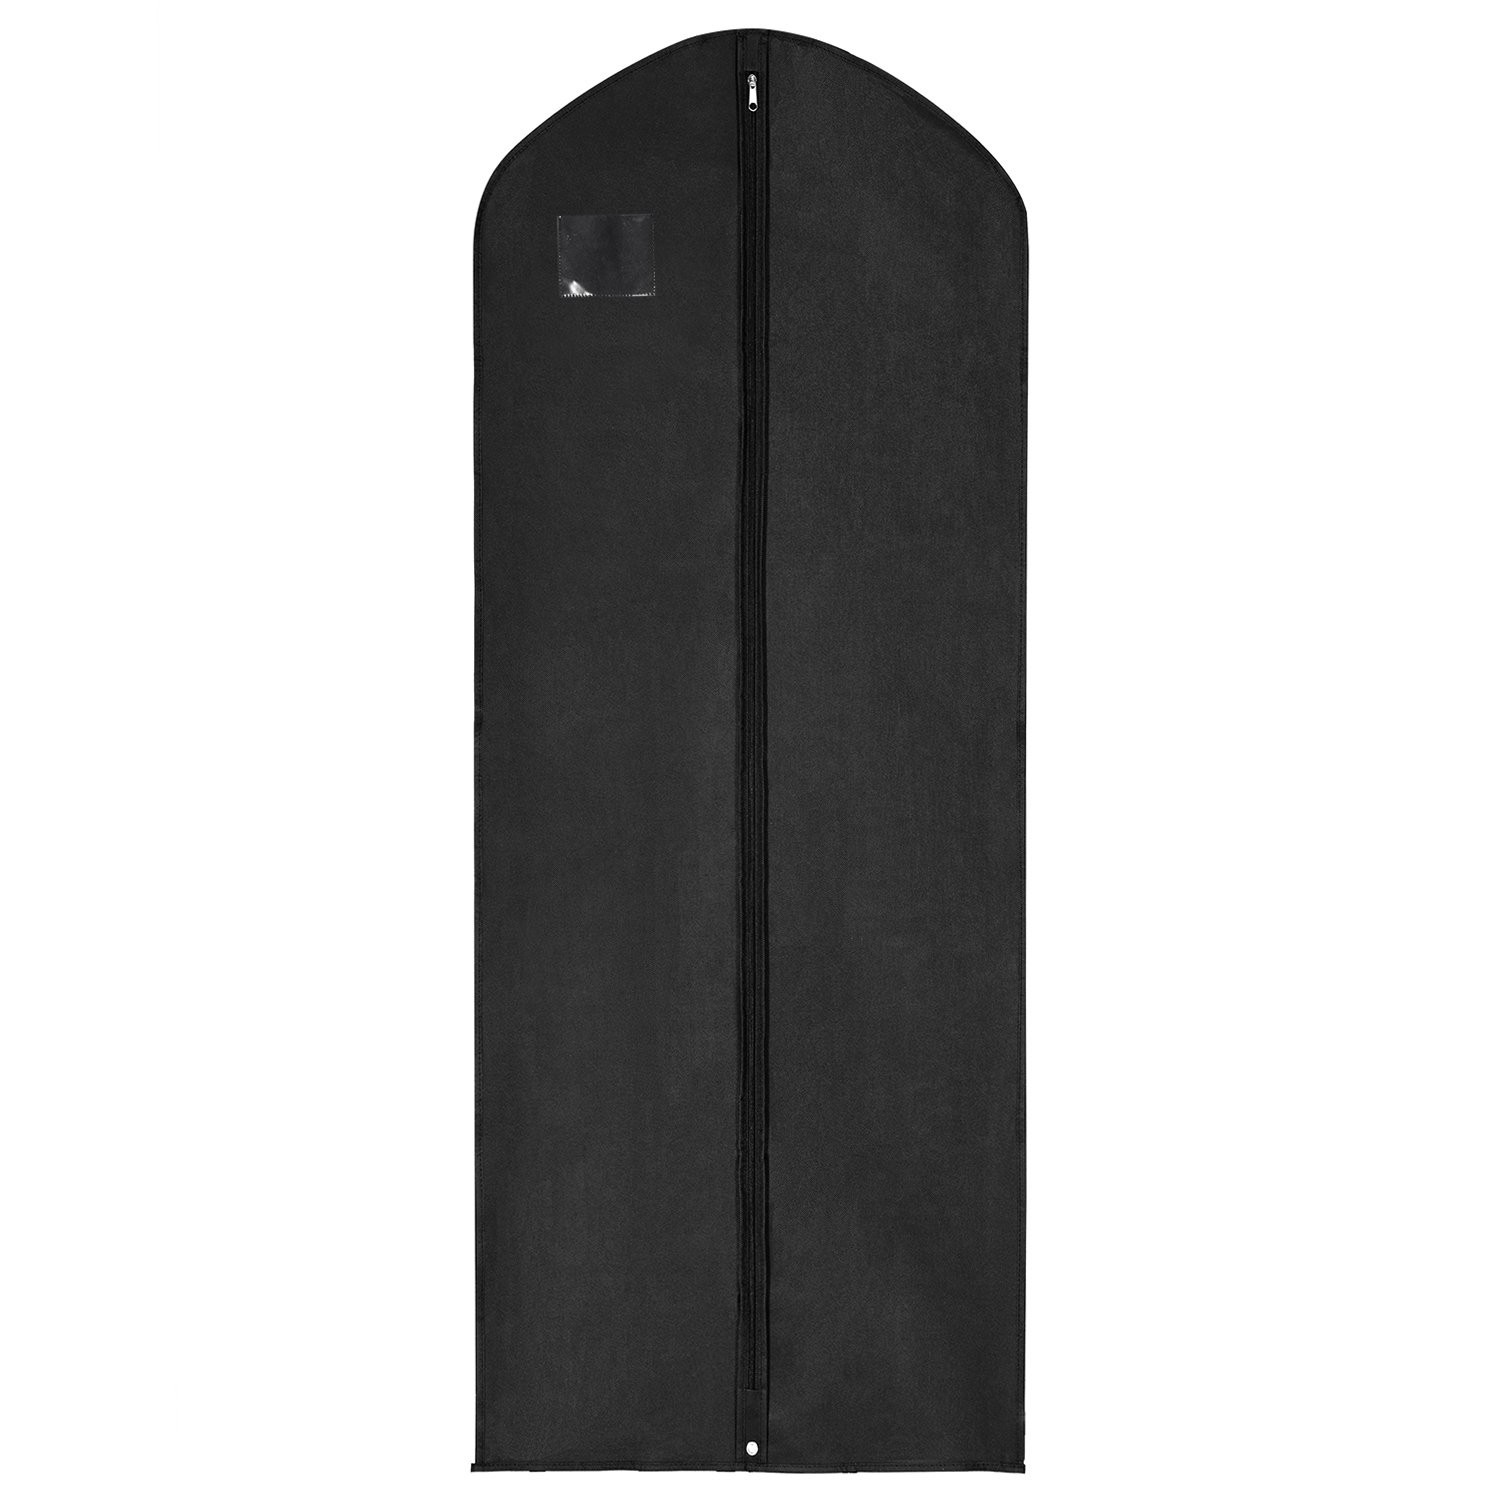 MaidMAX Extra Long Garment Bag Suit Cover with a Transparent Label Holder, Zipper and Inside Pocket, 60 Inches Long, Black 903097-2